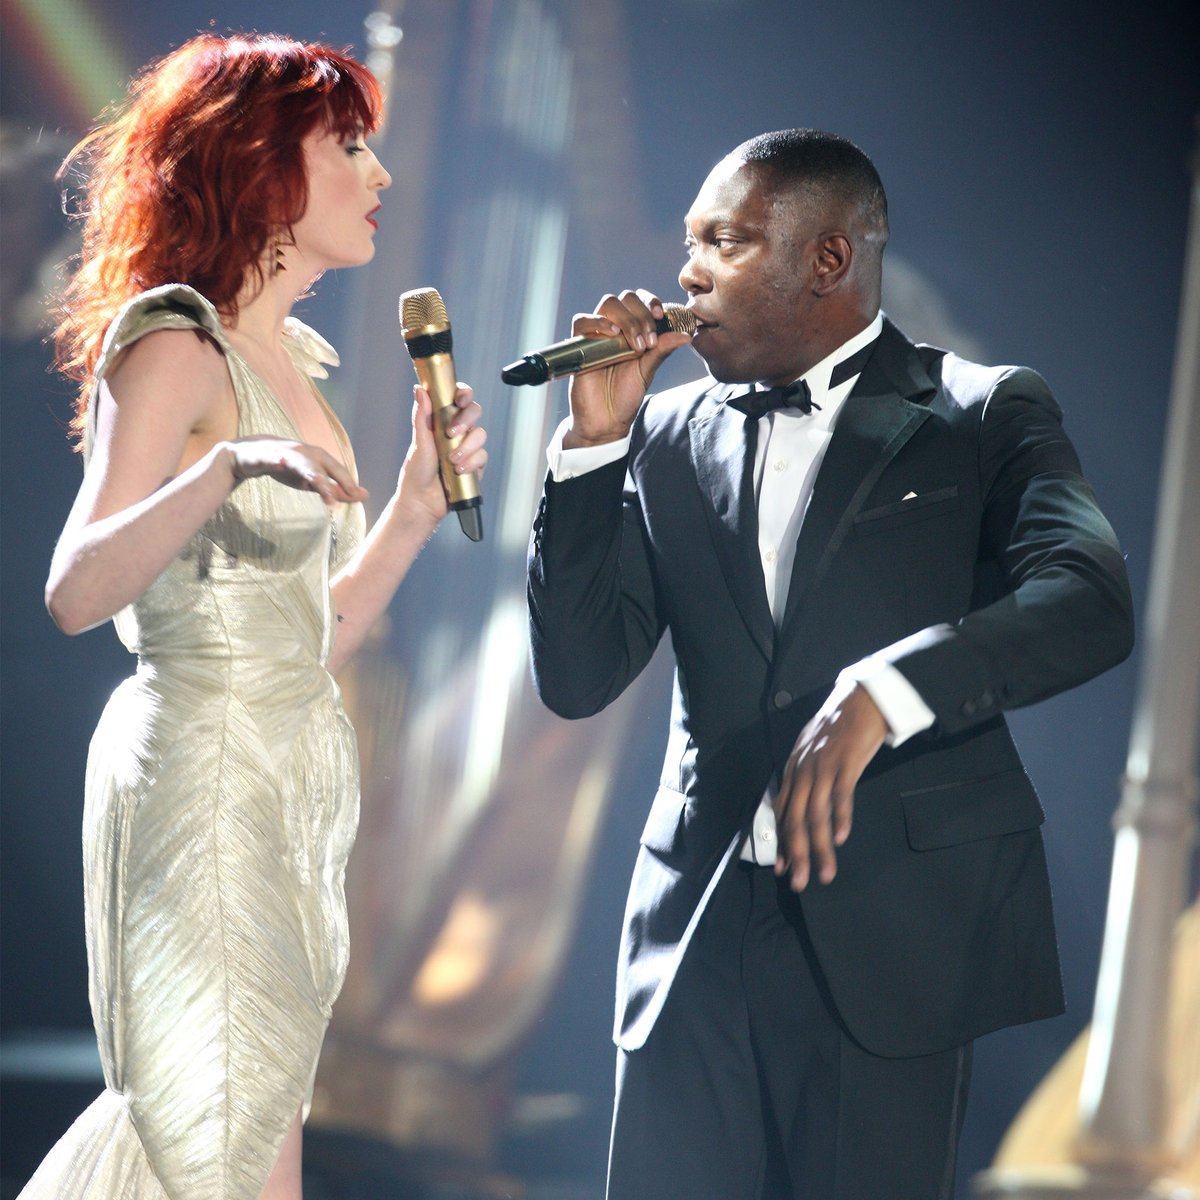 👫 And if we're talking duets, then we can't forget this EPIC performance from @florencemachine and @DizzeeRascal of 'You Got The Dirtee Love' 💥↴